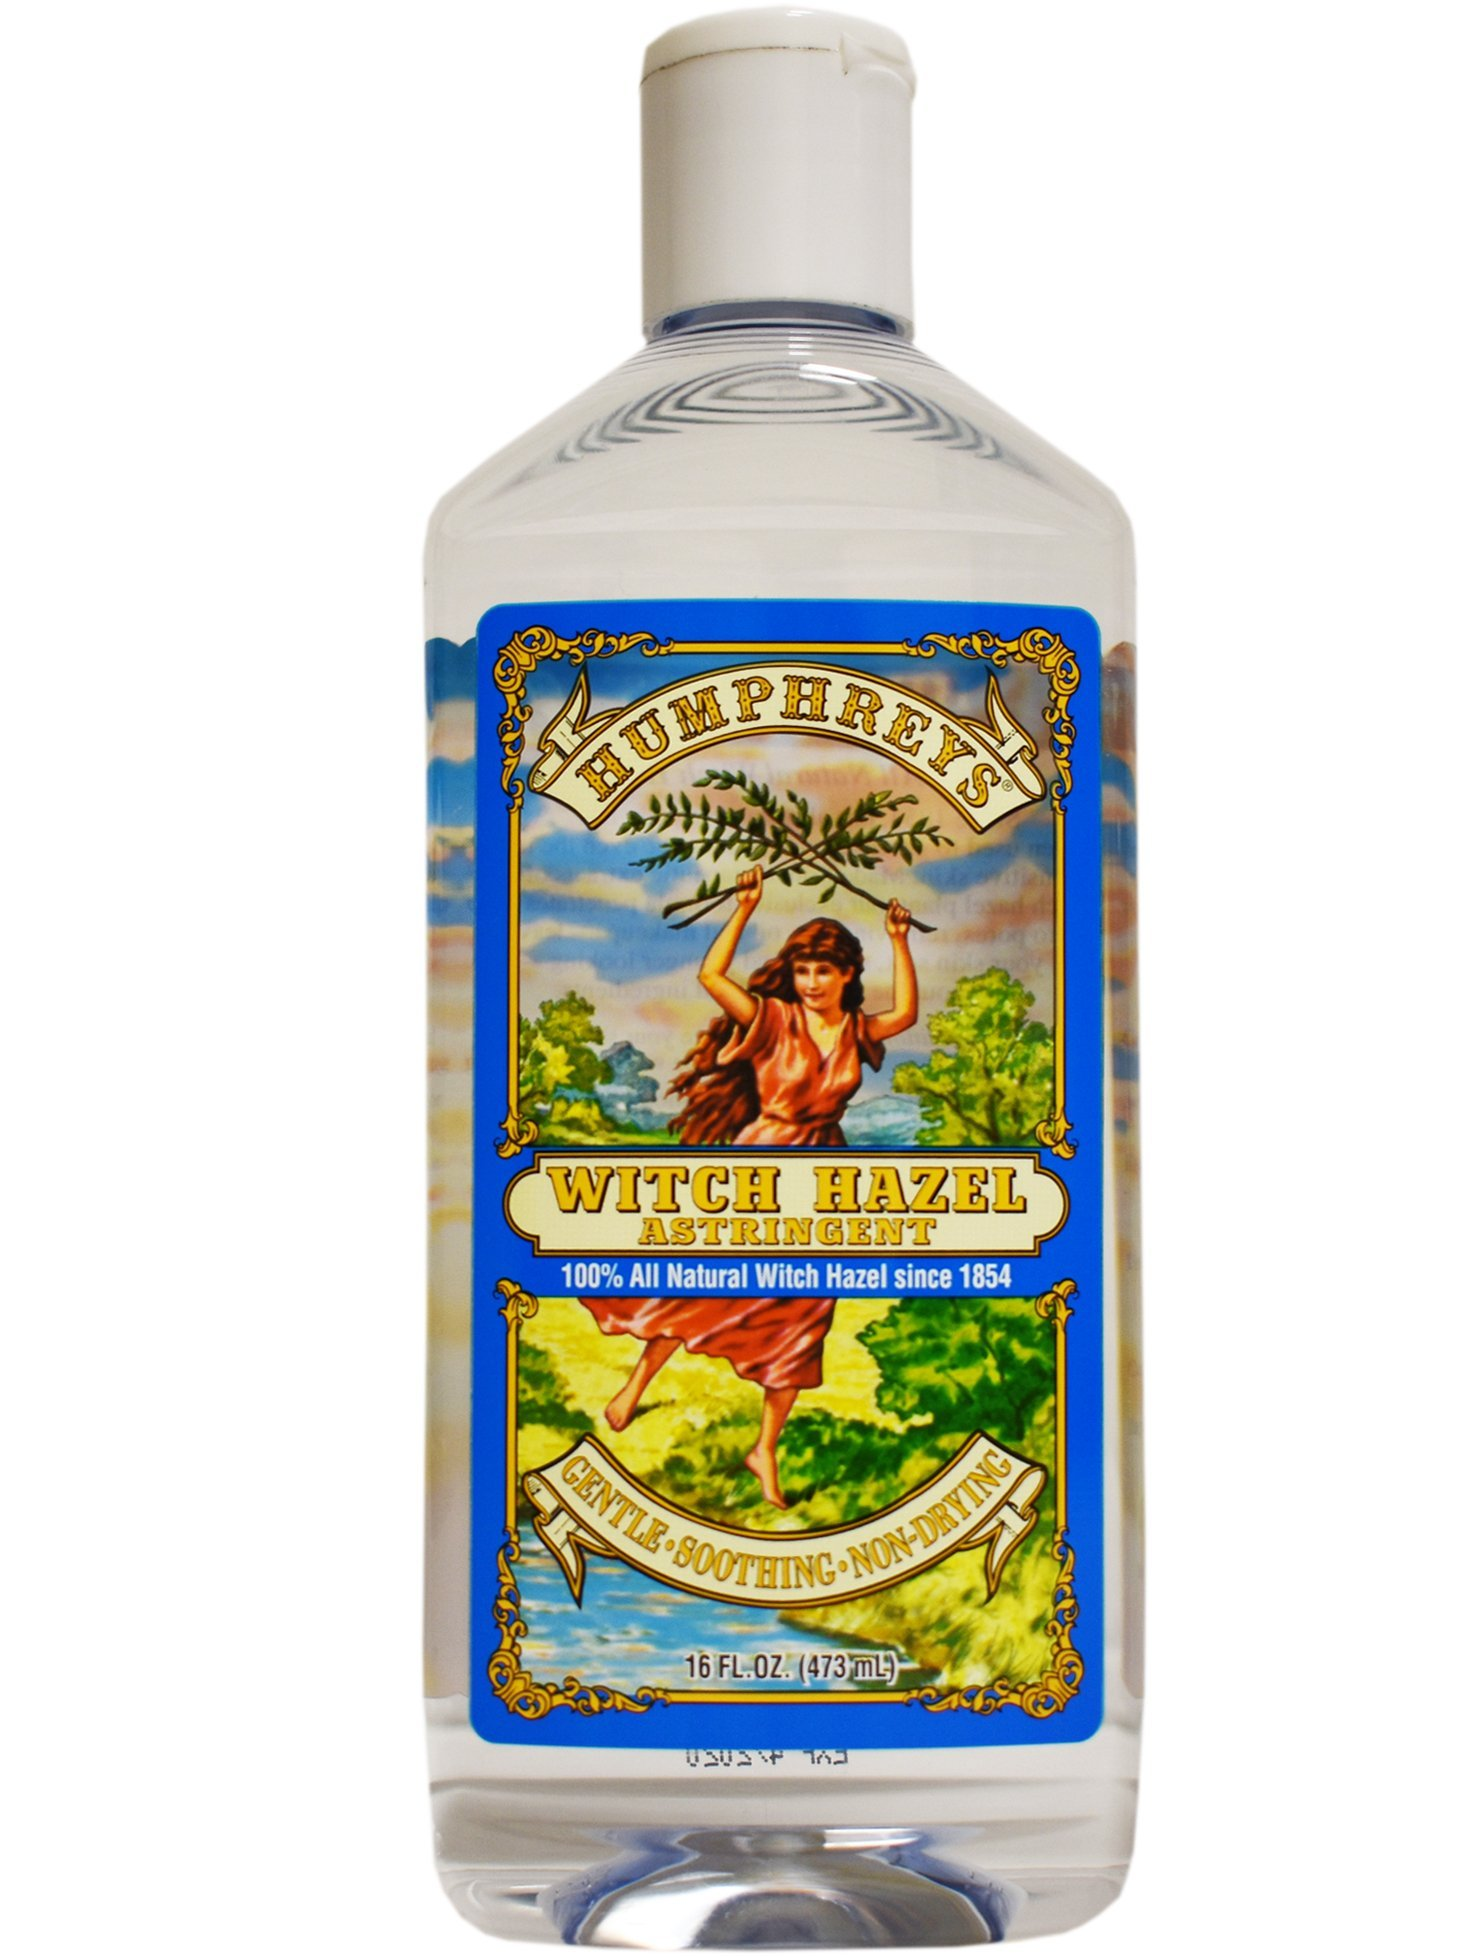 Humphrey's Witch Hazel Astringent 100% All Natural Witch Hazel 16 Ounce by Humphrey's